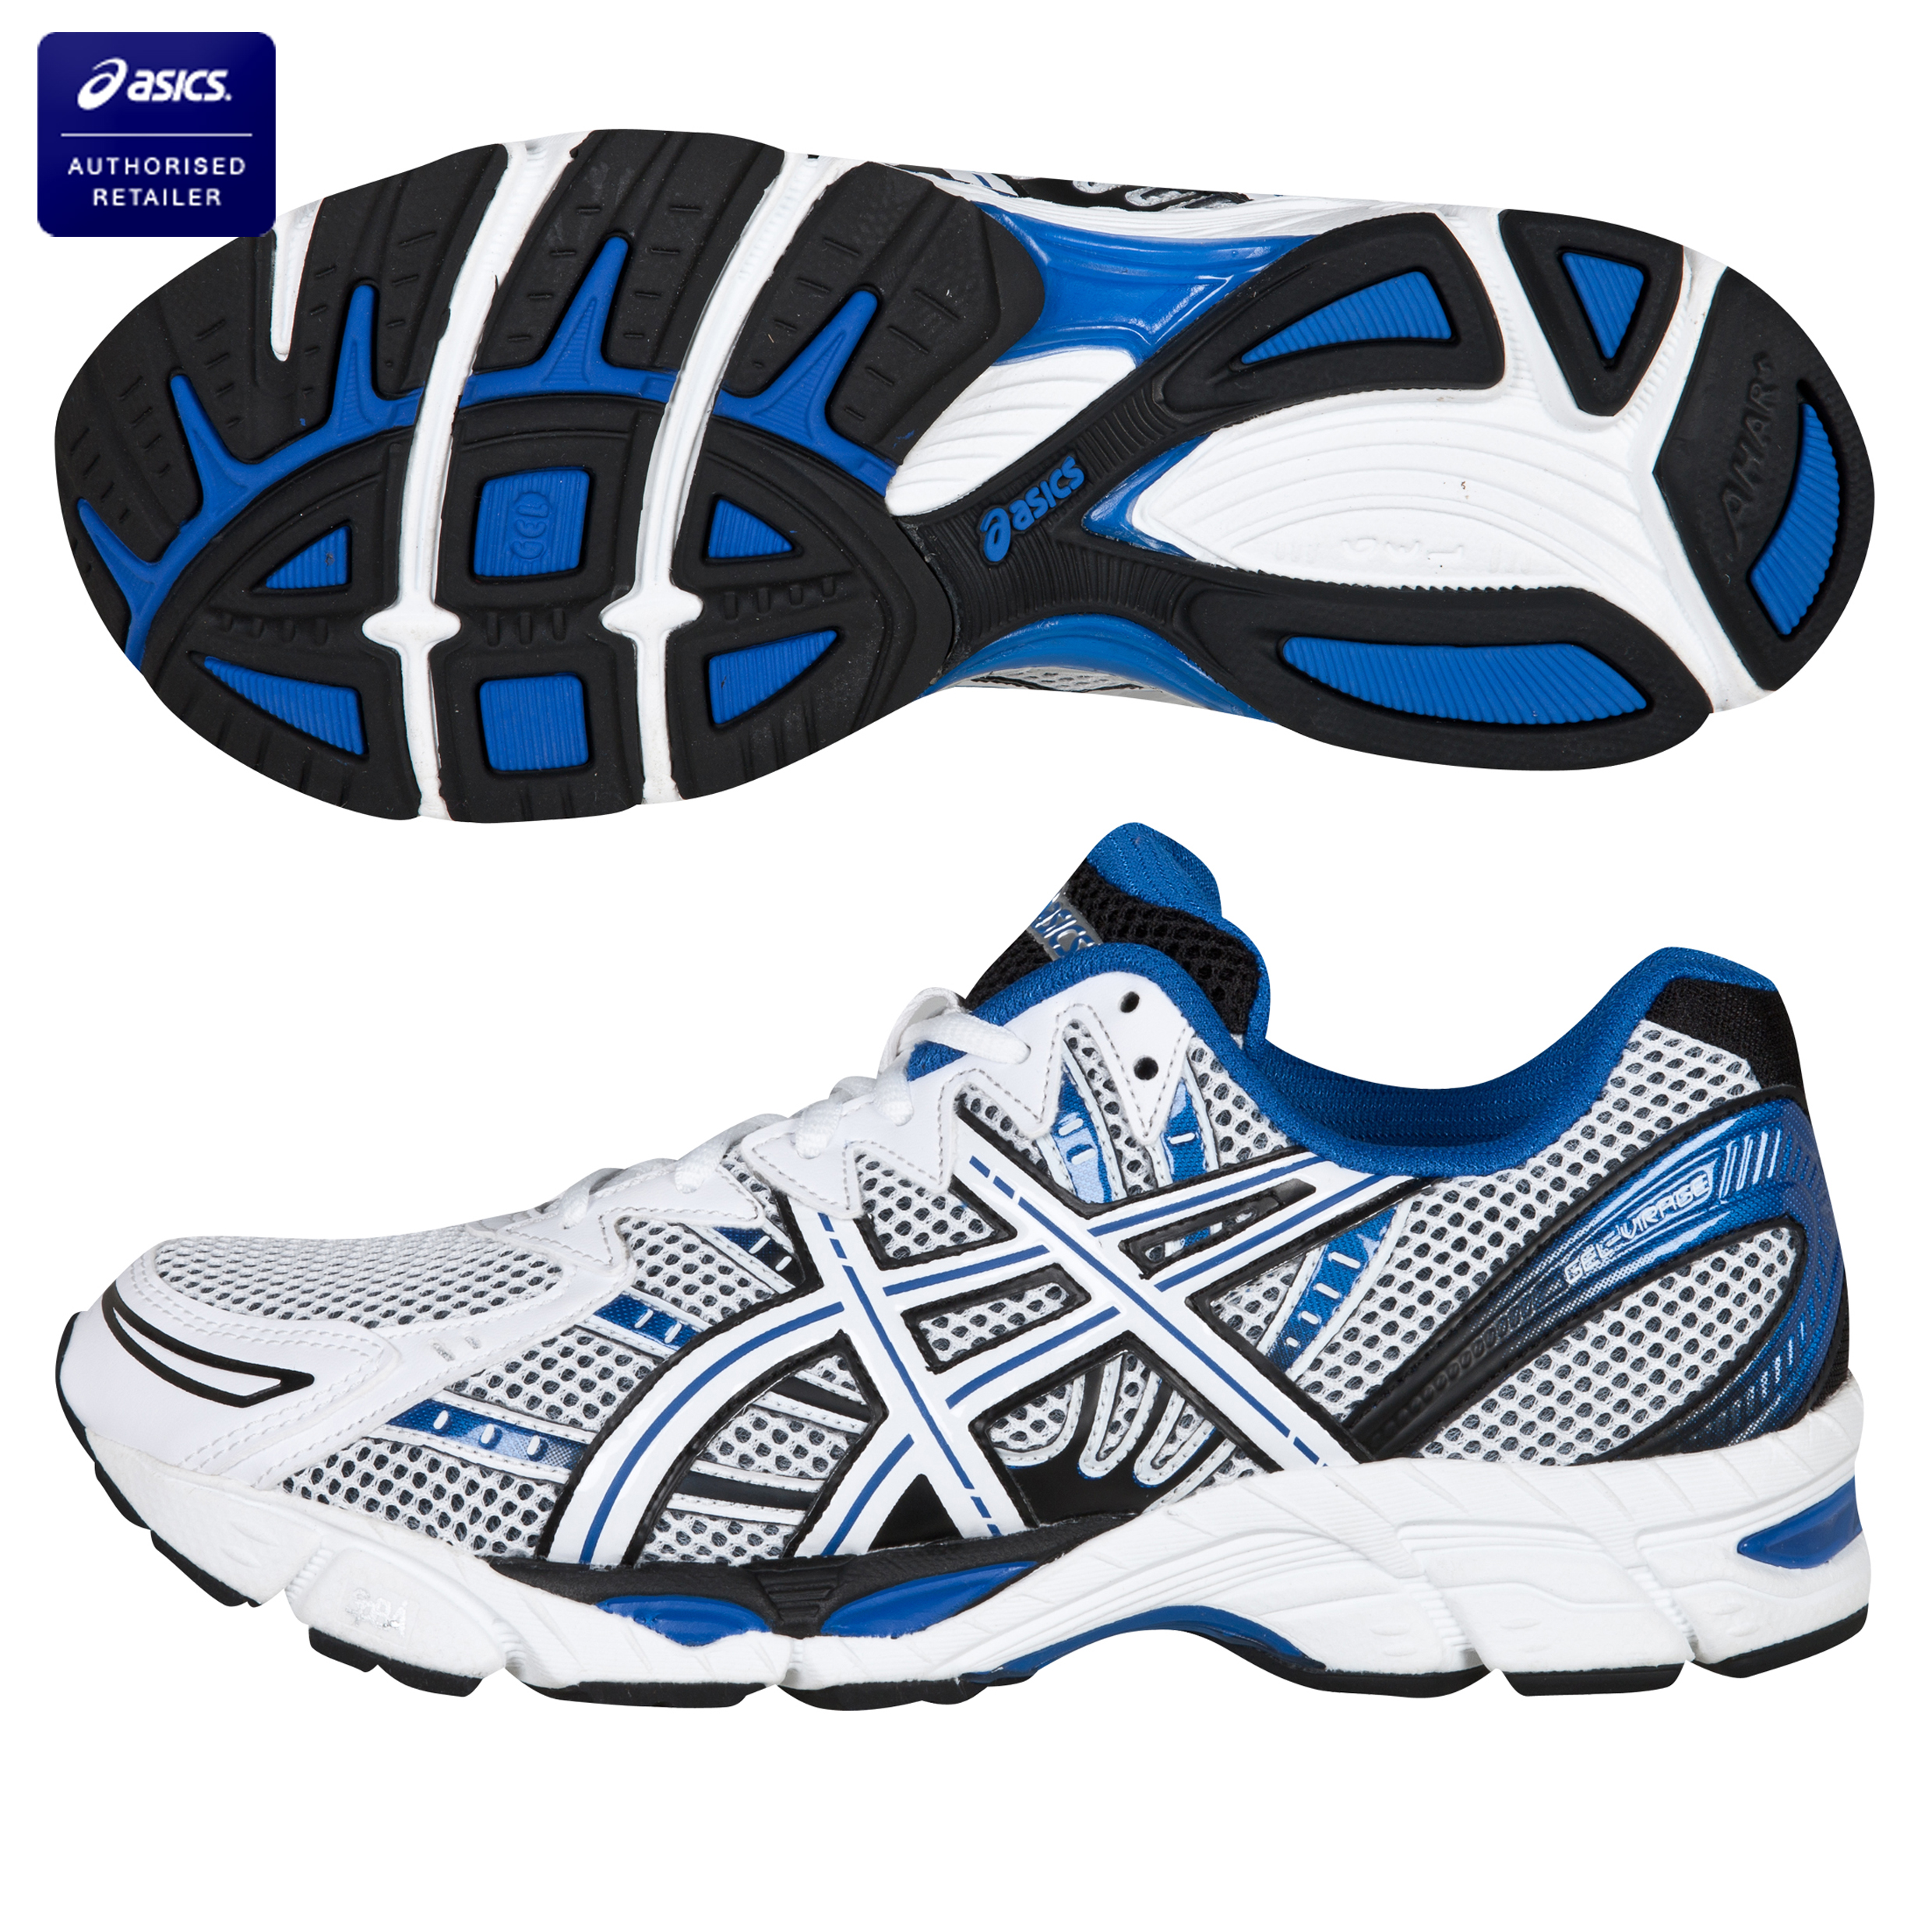 Asics Gel-Virage 6 Running Trainers - White/Black/Blue